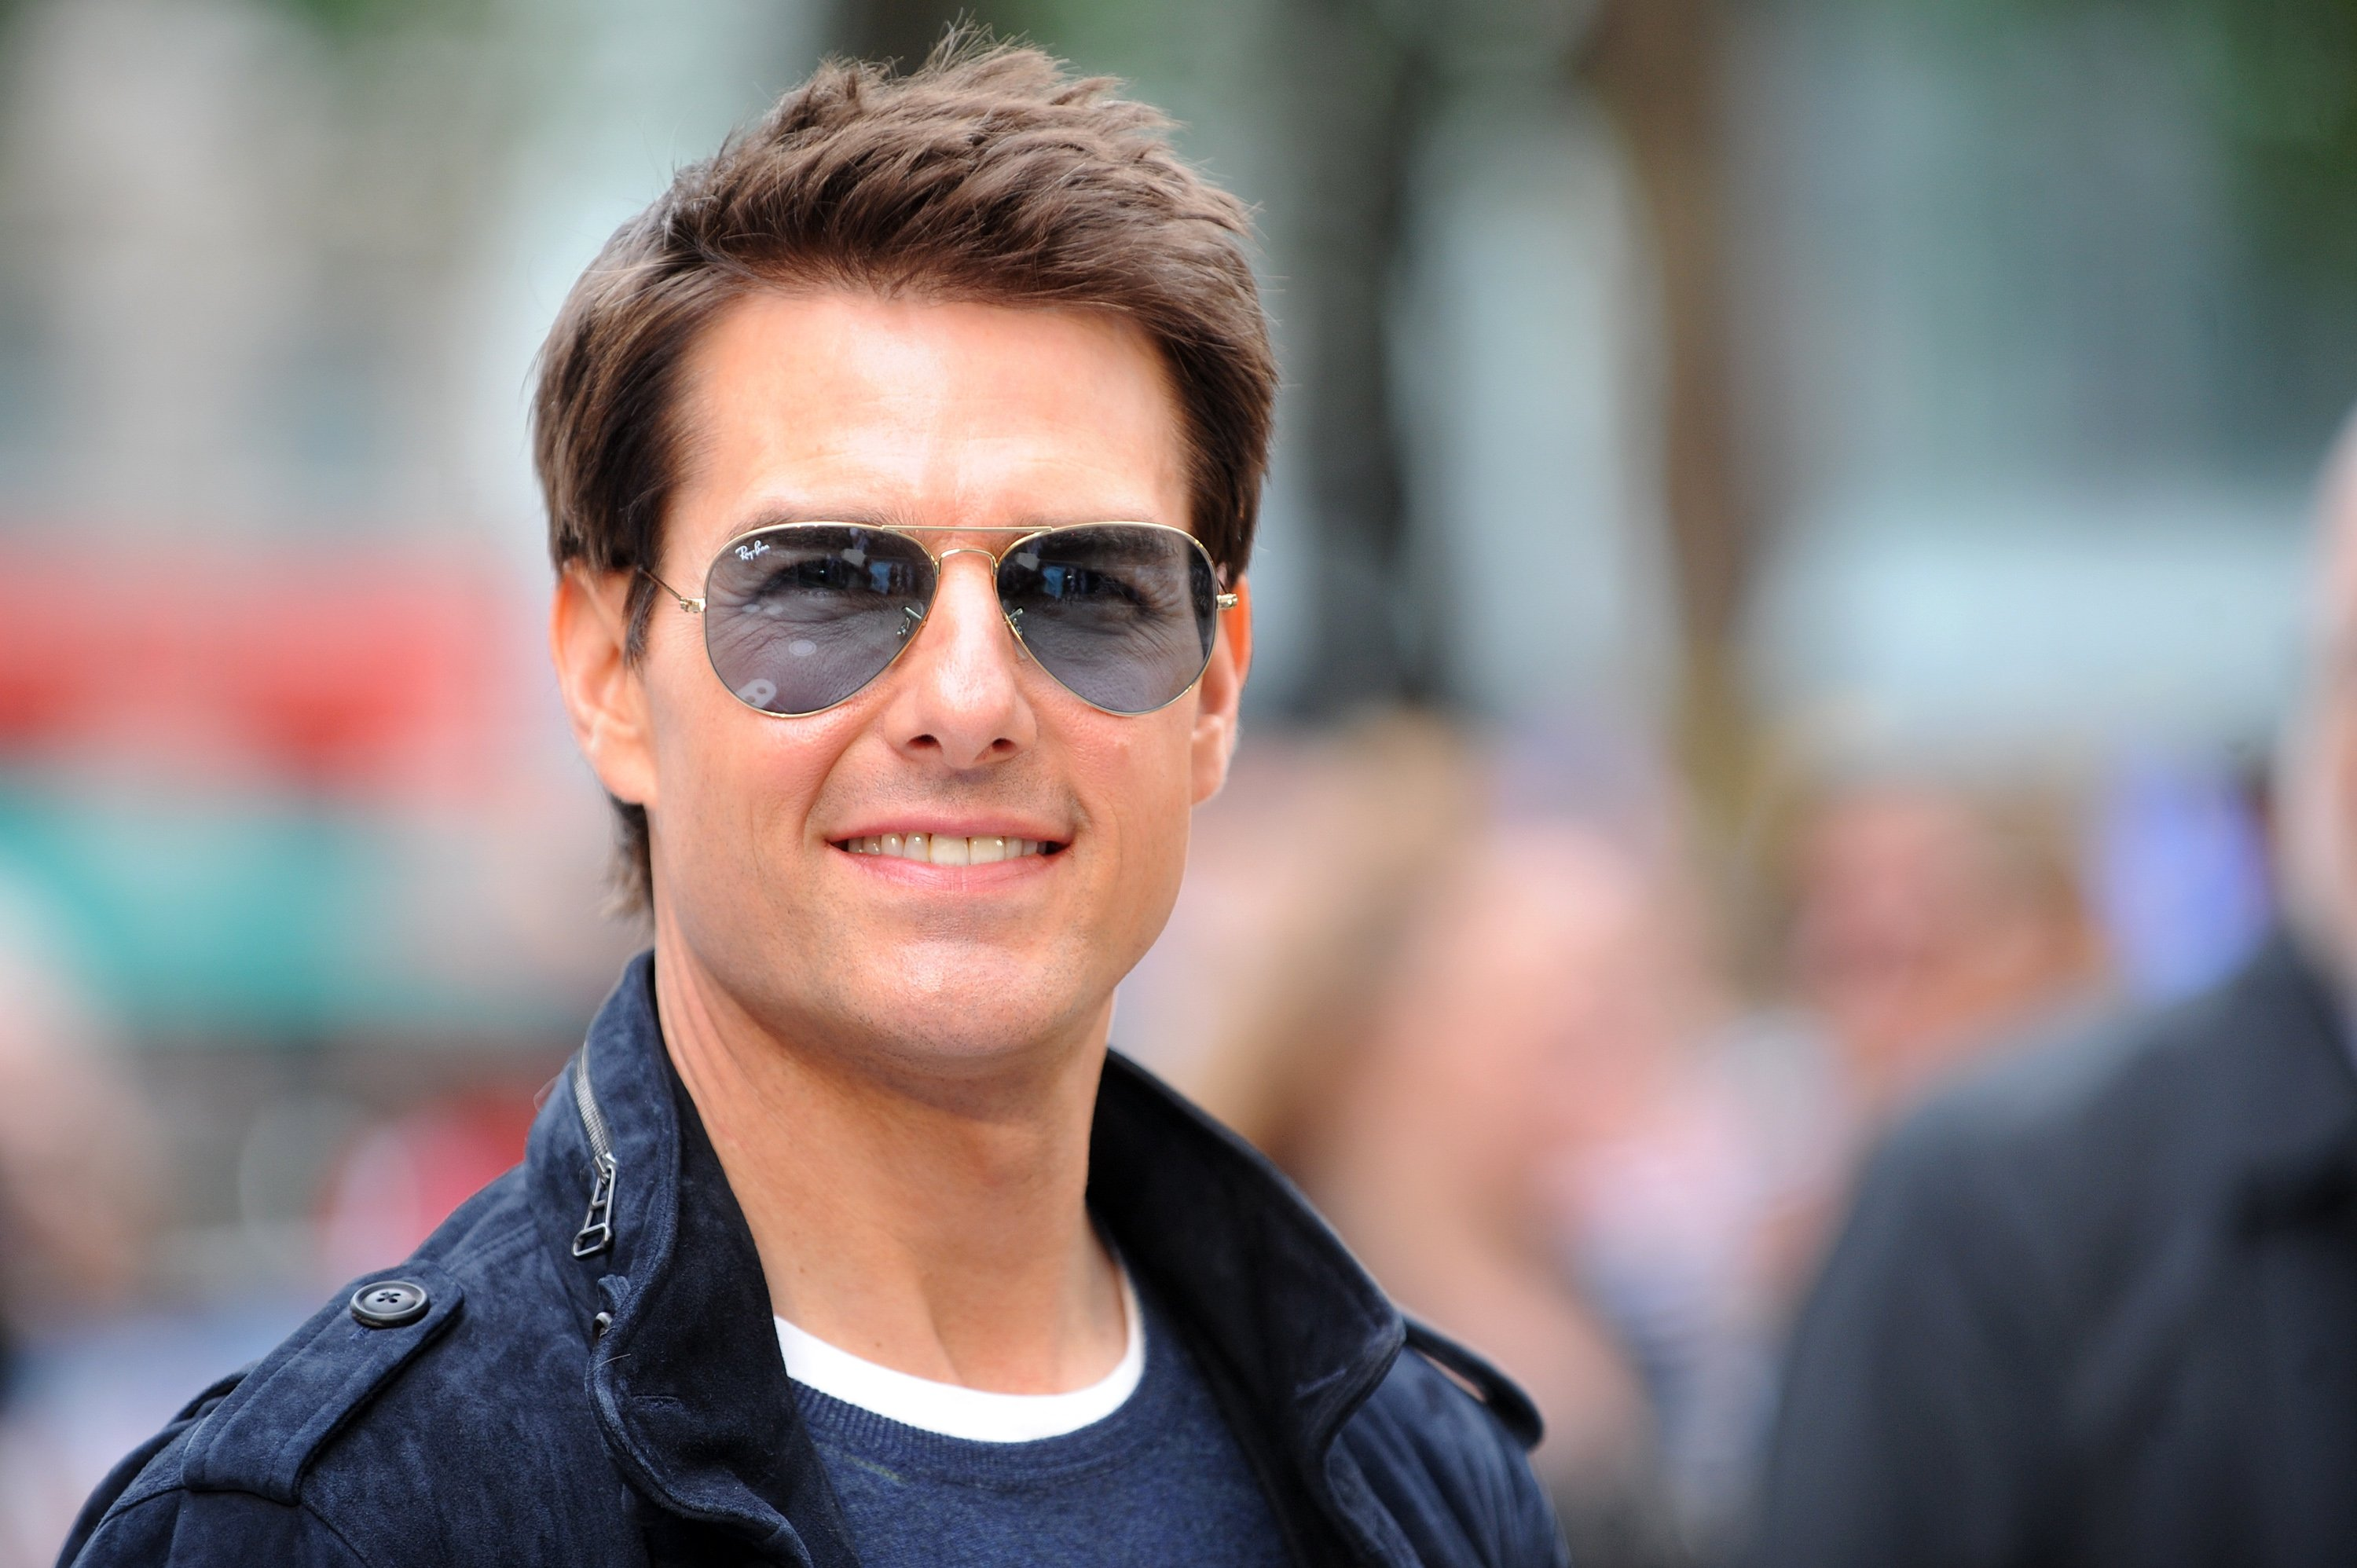 """Tom Cruise attends the European premiere of """"Rock Of Ages"""" in London, England on June 10, 2012 